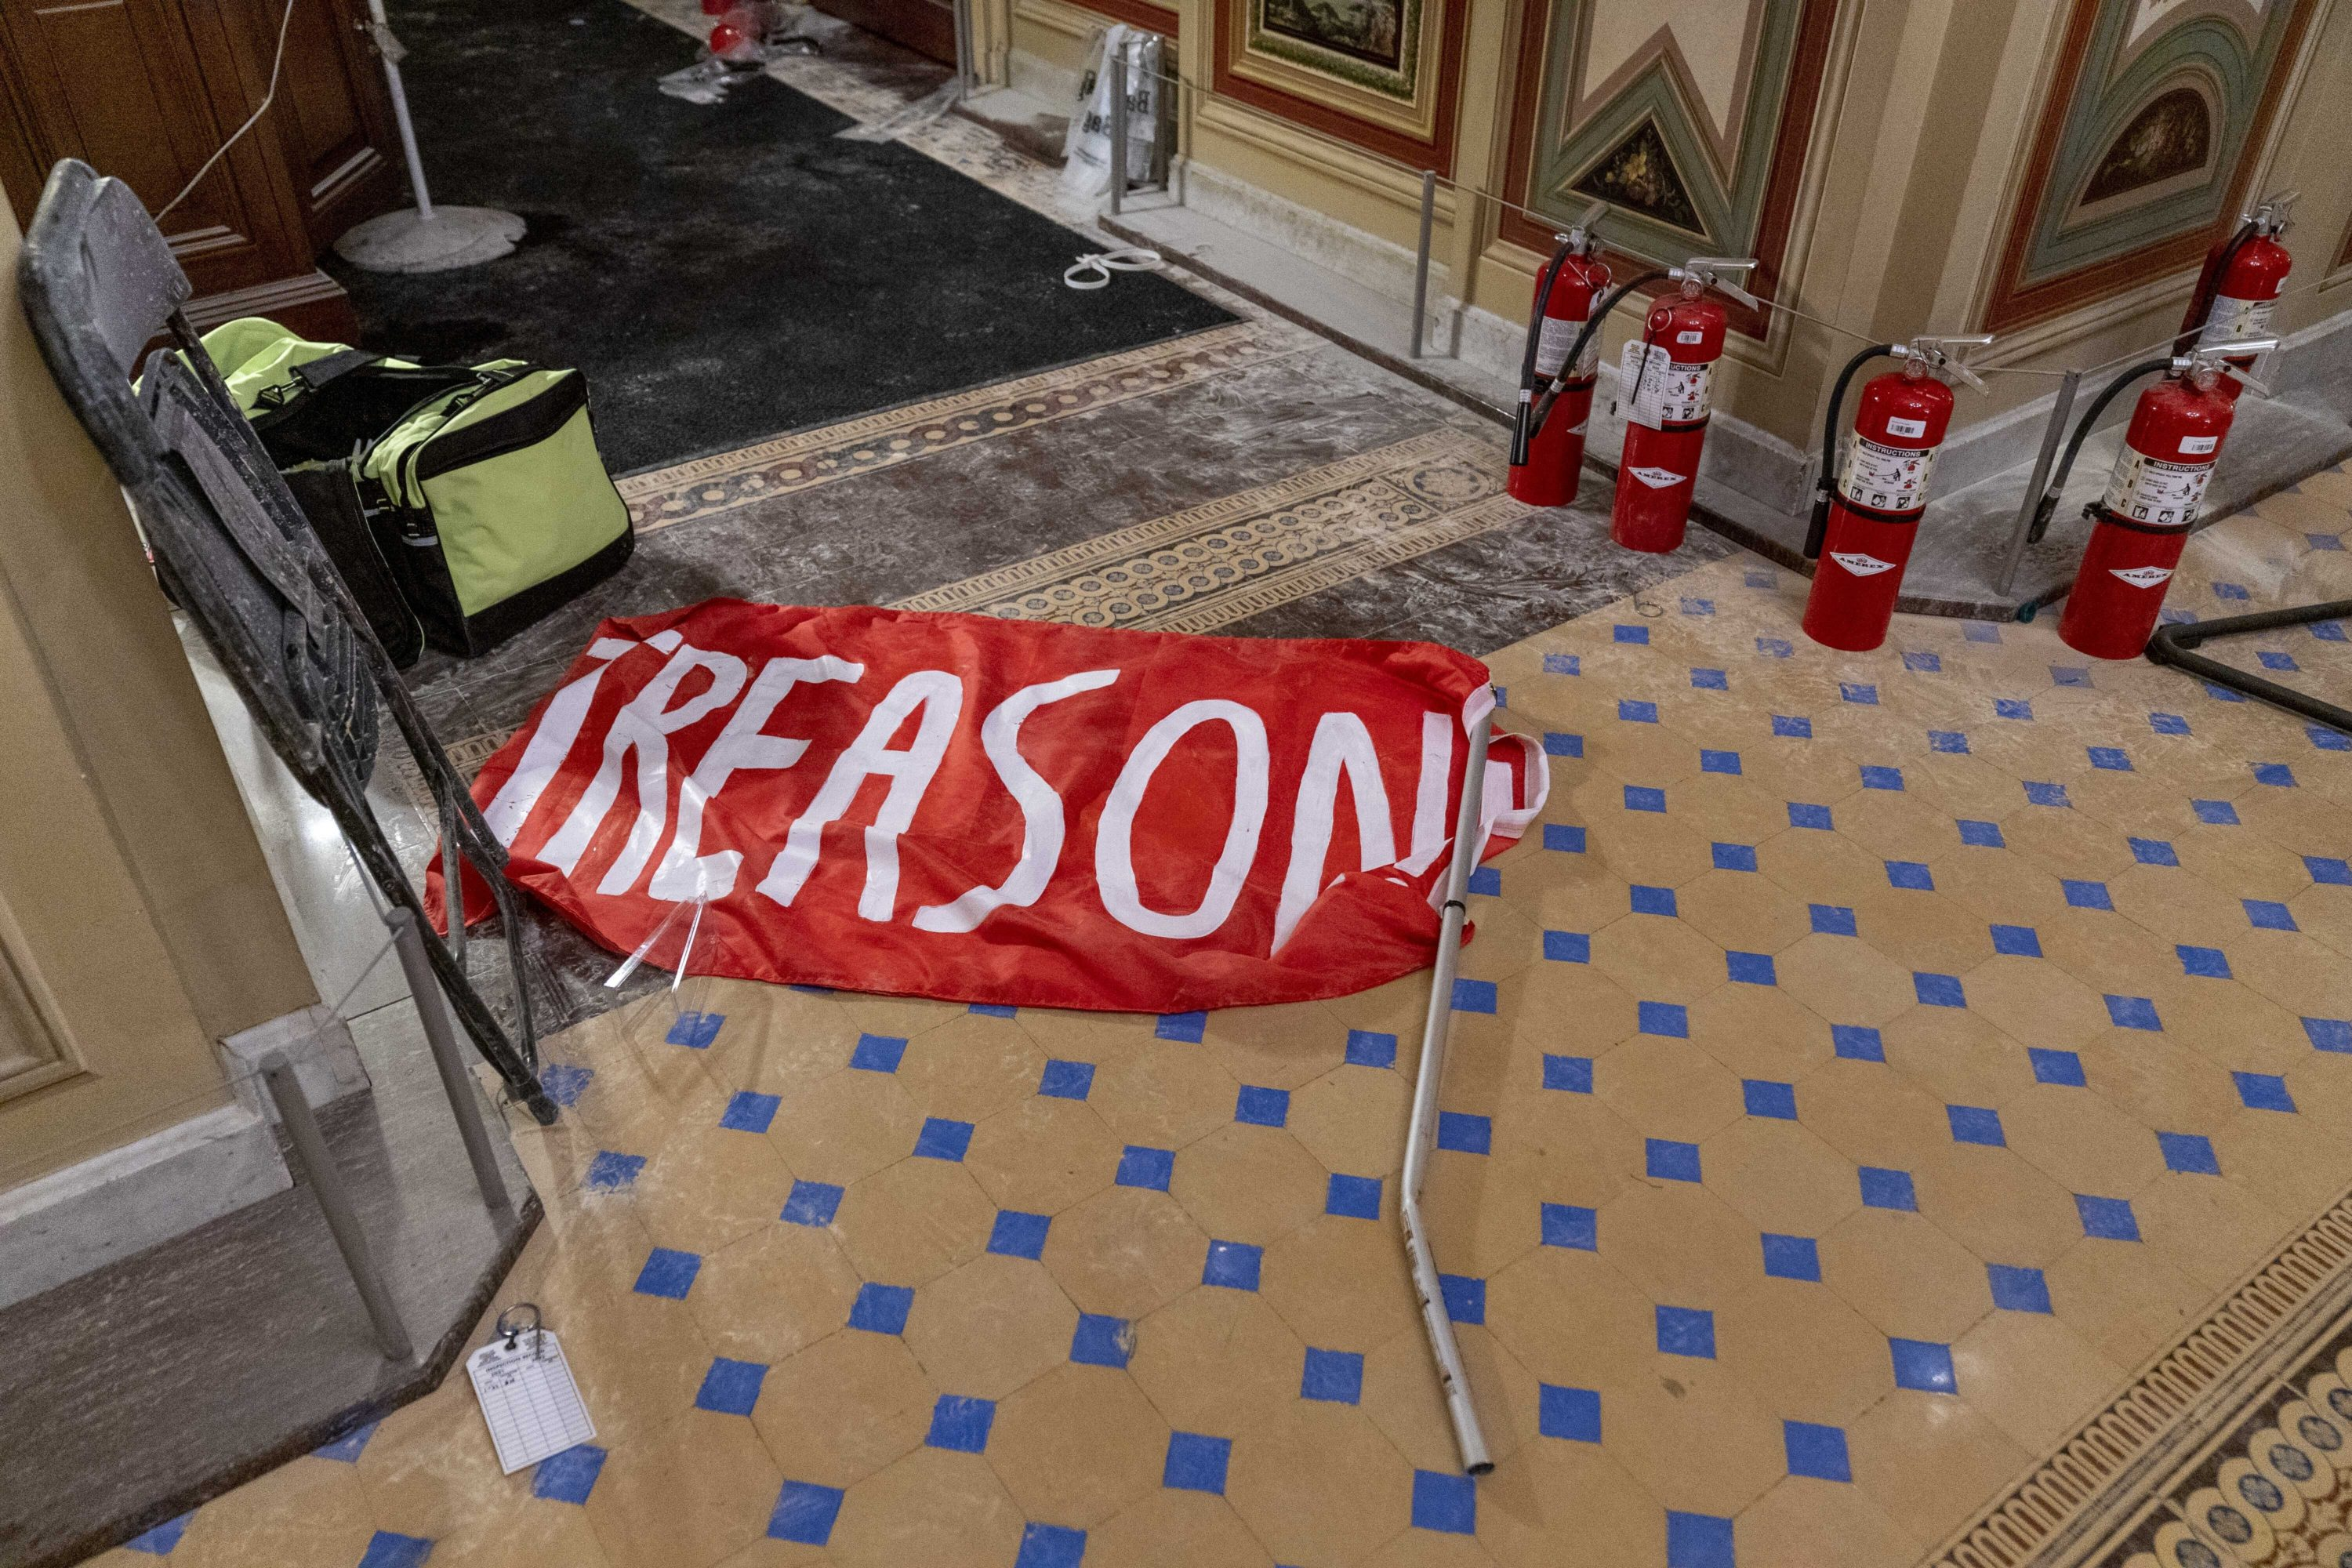 """A flag that reads """"Treason"""" is visible on the ground in the early morning hours of Thursday, Jan. 7, 2021, a day after protesters stormed the Capitol in Washington. (Andrew Harnik/AP)"""